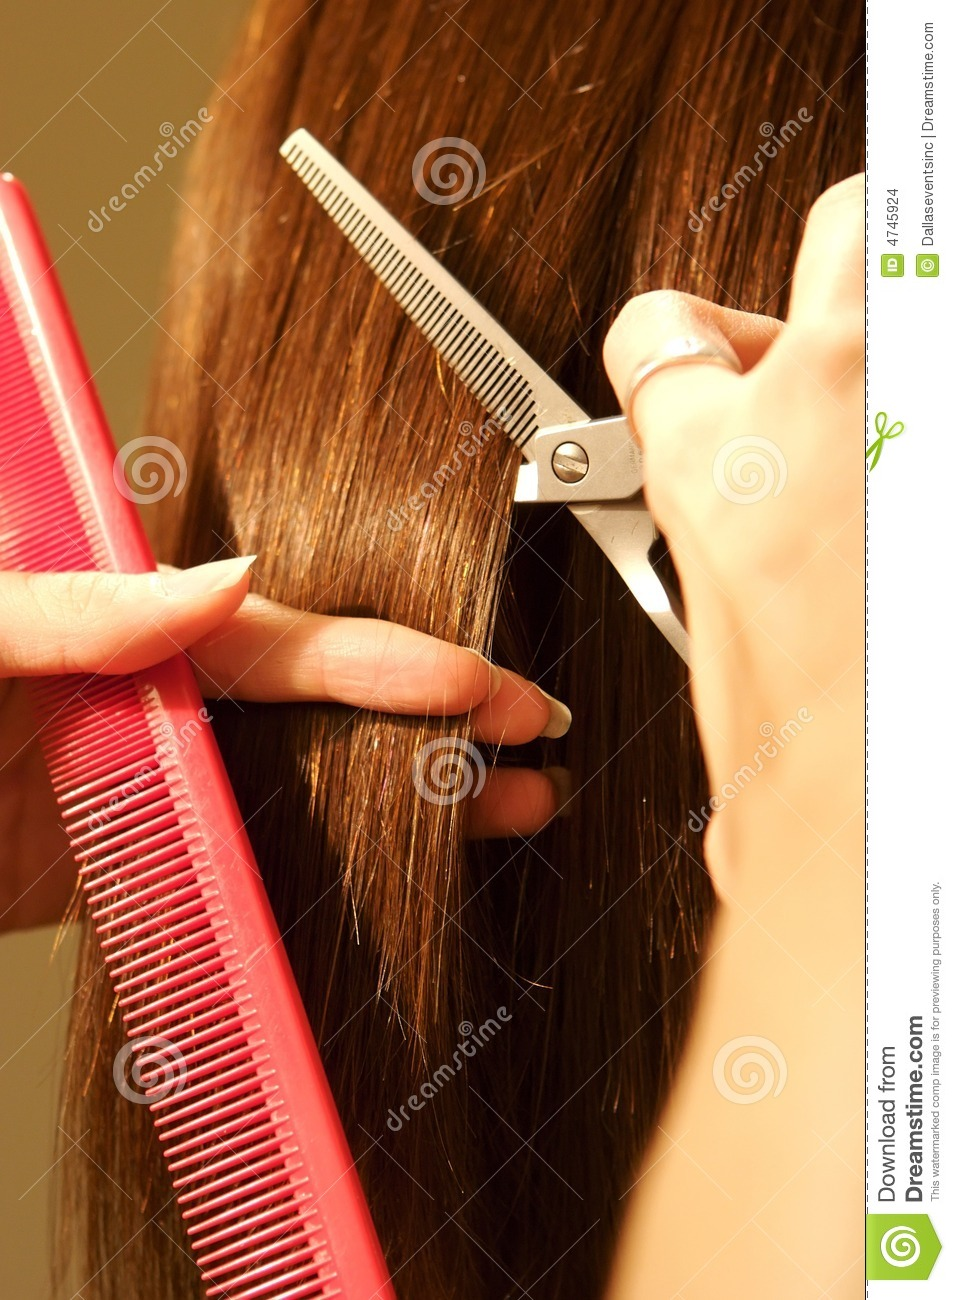 Hair Cutting Pics : More similar stock images of ` Female hair cutting at a salon `